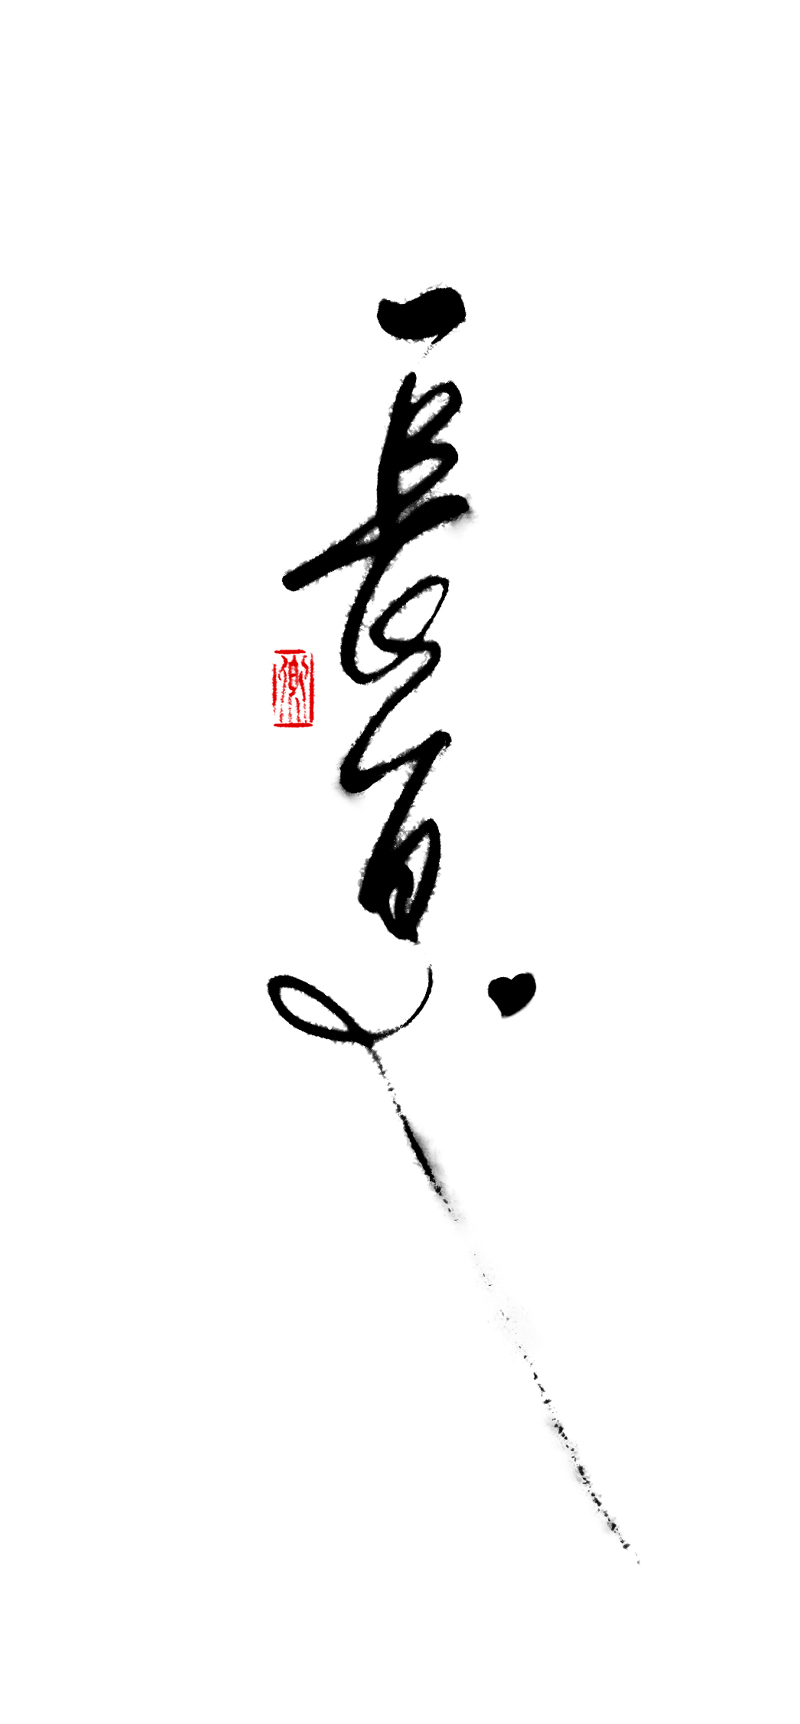 chinesefontdesign.com 2016 12 02 19 49 16 24P Infinite charm of the Chinese calligraphy font